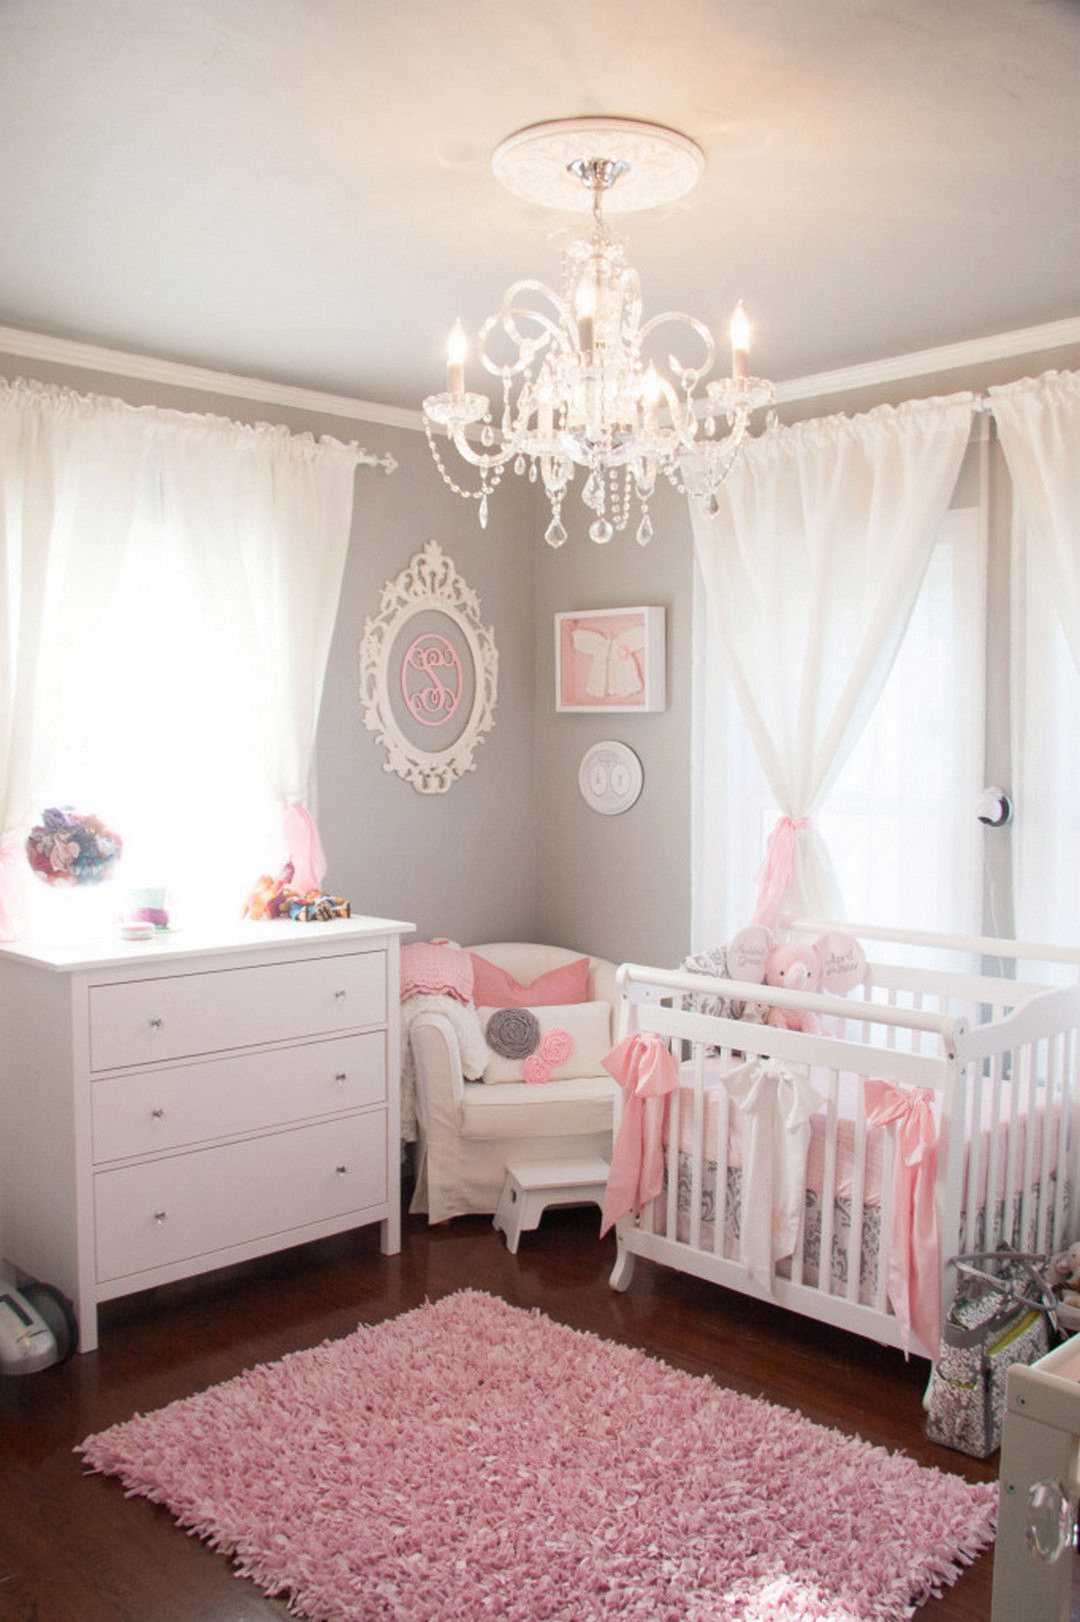 31 Cute Baby Girl Nursery Ideas https://www.futuristarchitecture.com ...